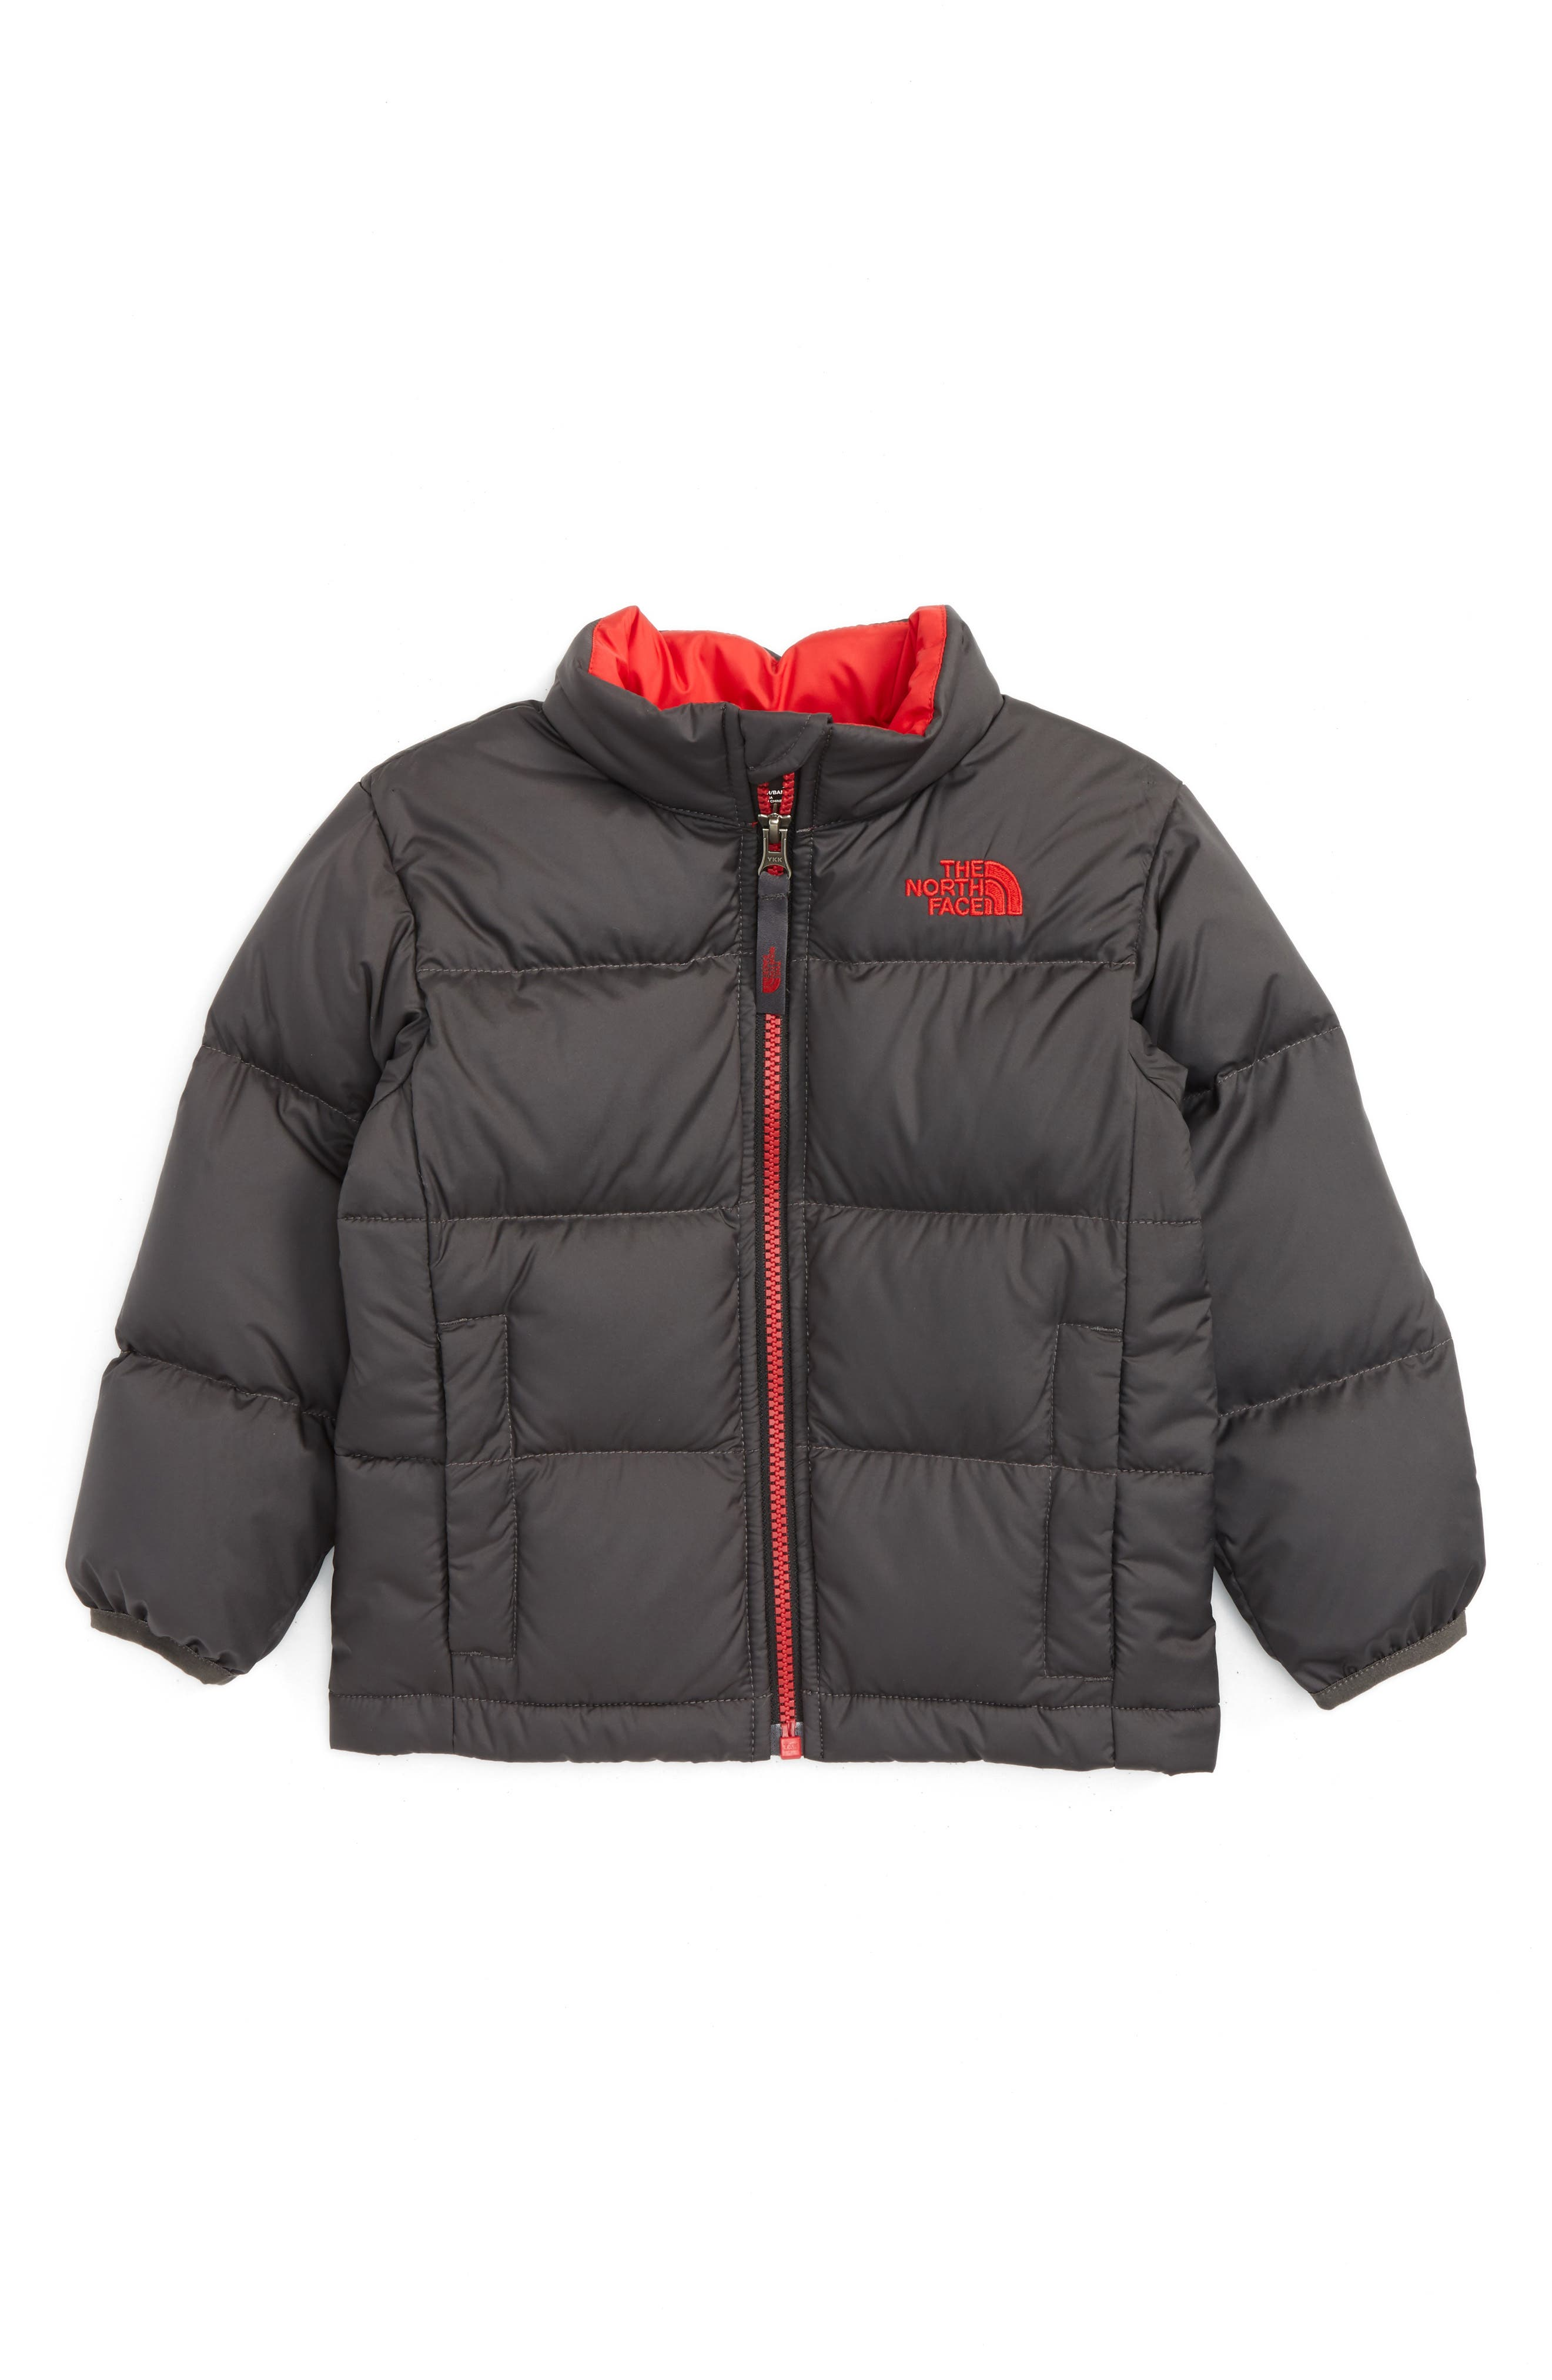 Main Image - The North Face 'Andes' Down Jacket (Toddler Boys & Little Boys)